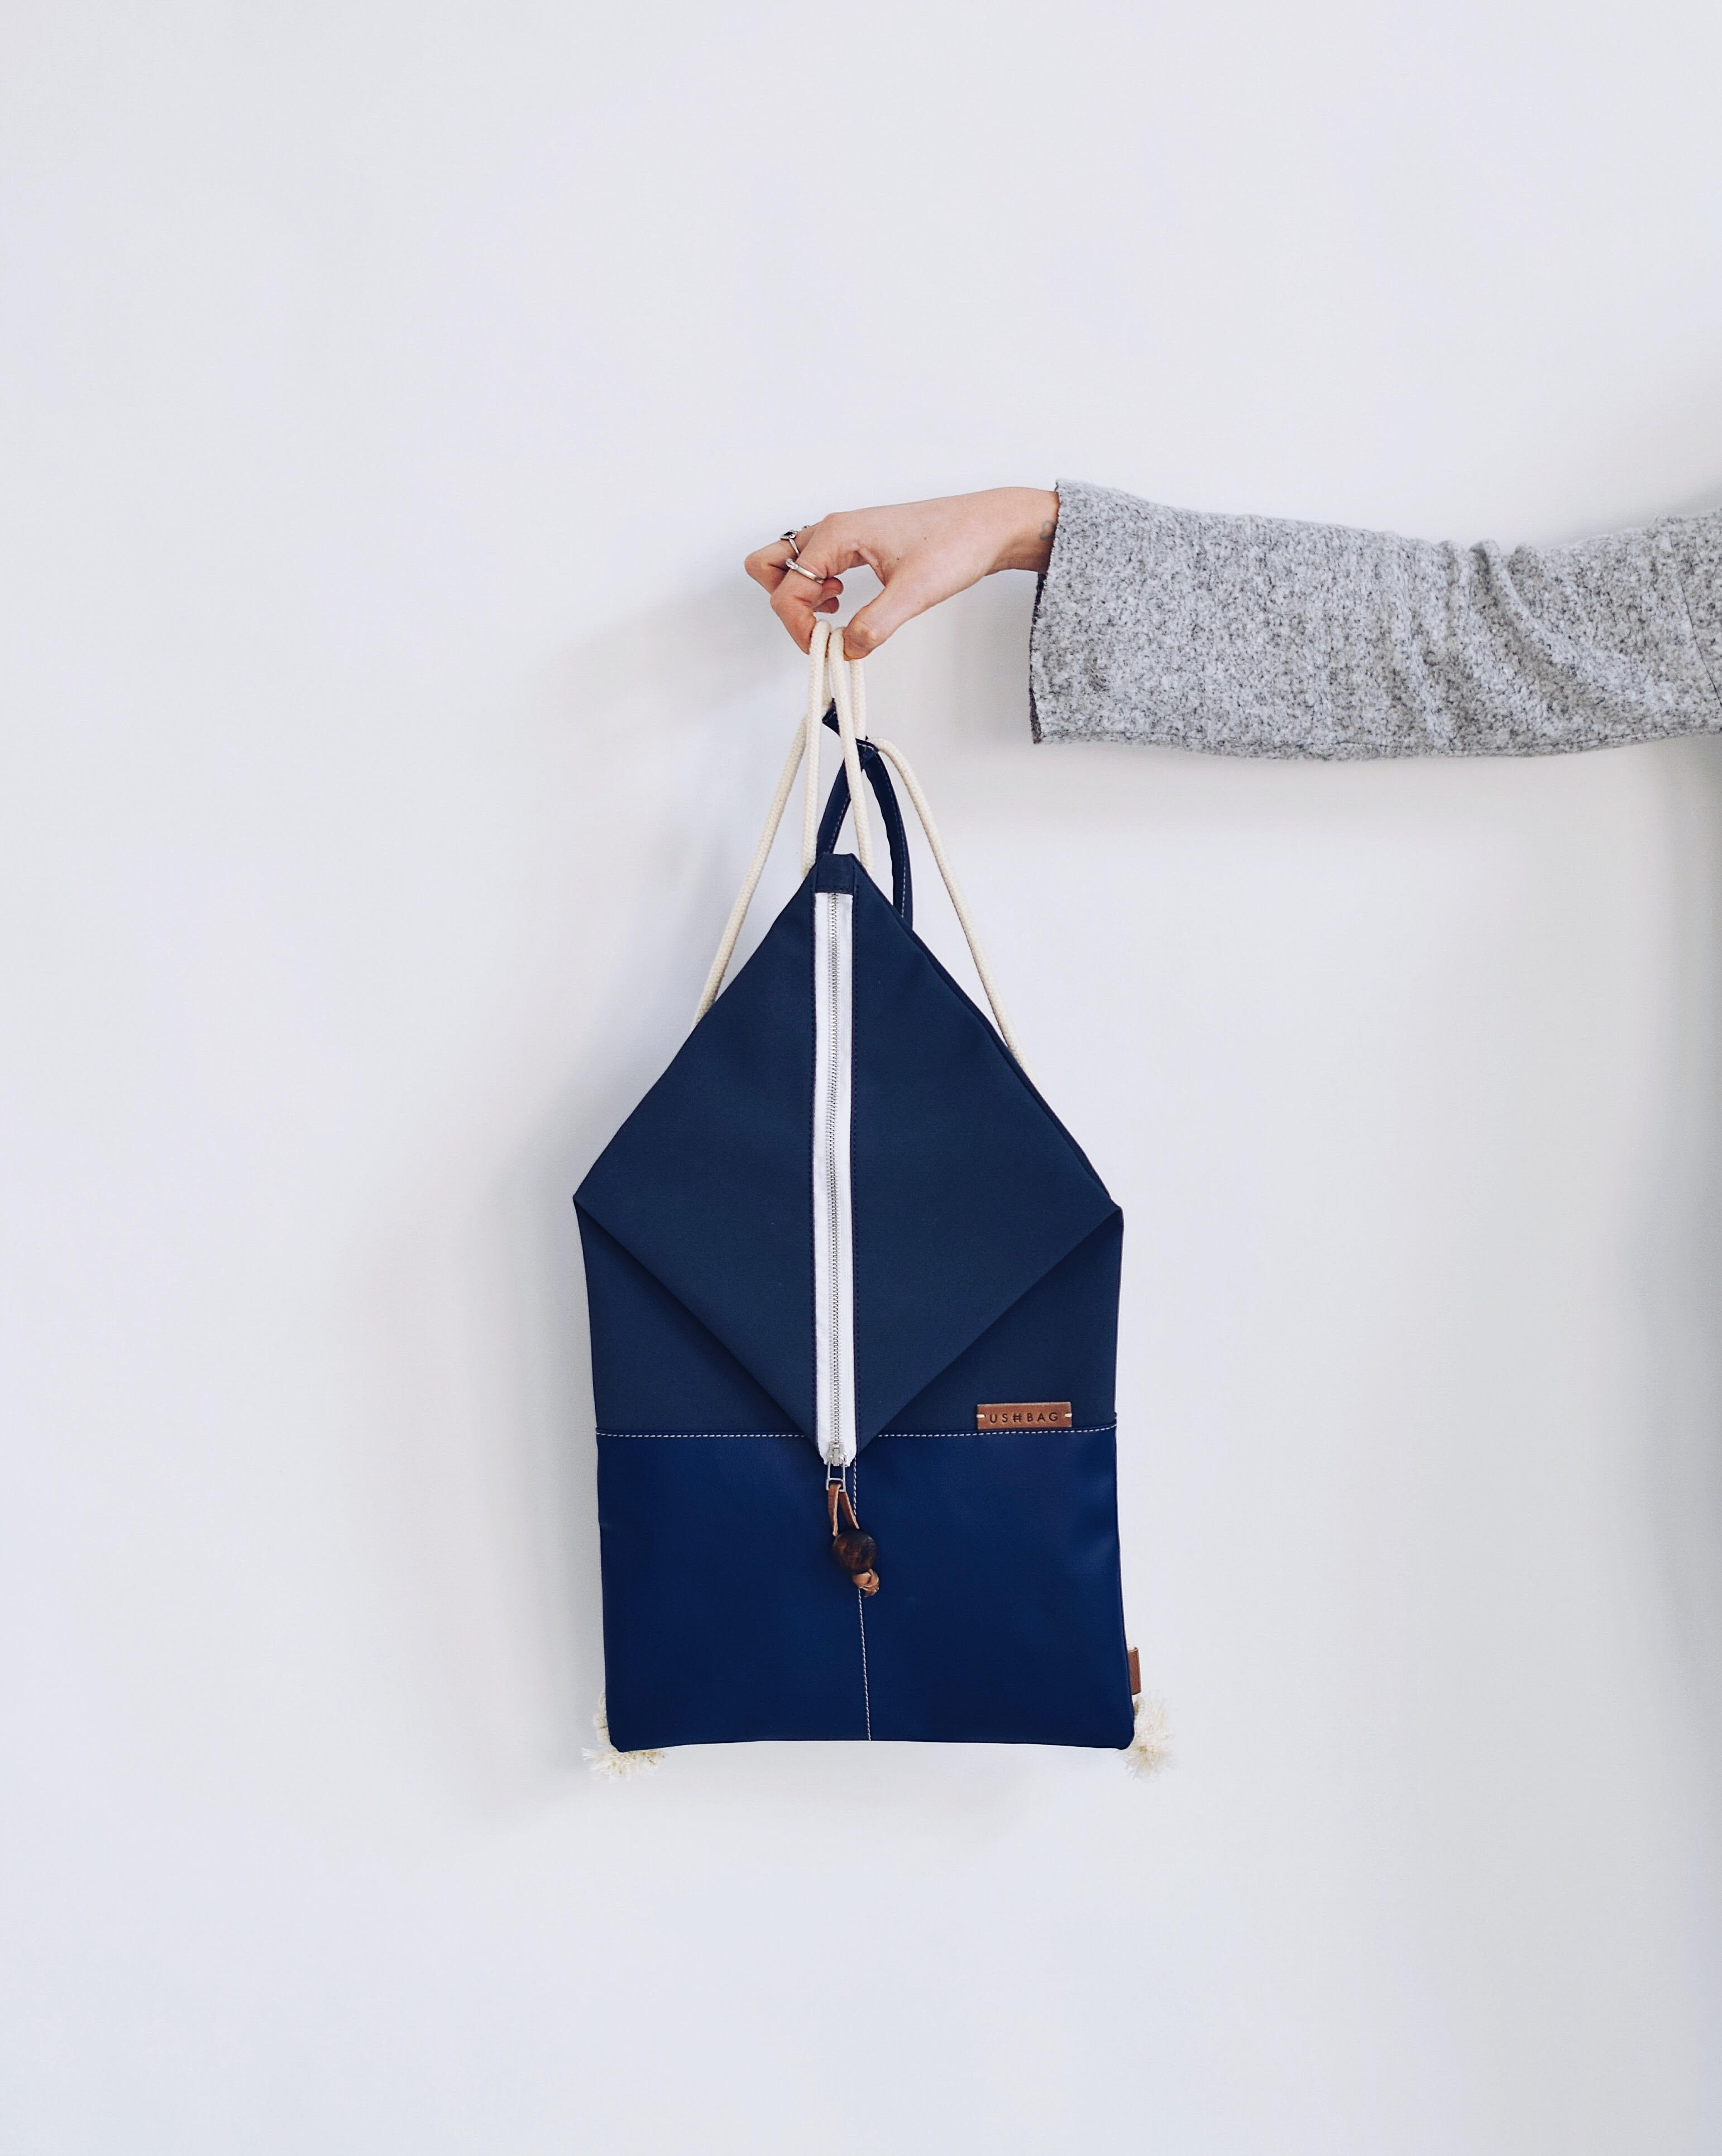 Ushbag, the way you feel - Il Backpack di Di Domenico e Rivolta | Collater.al